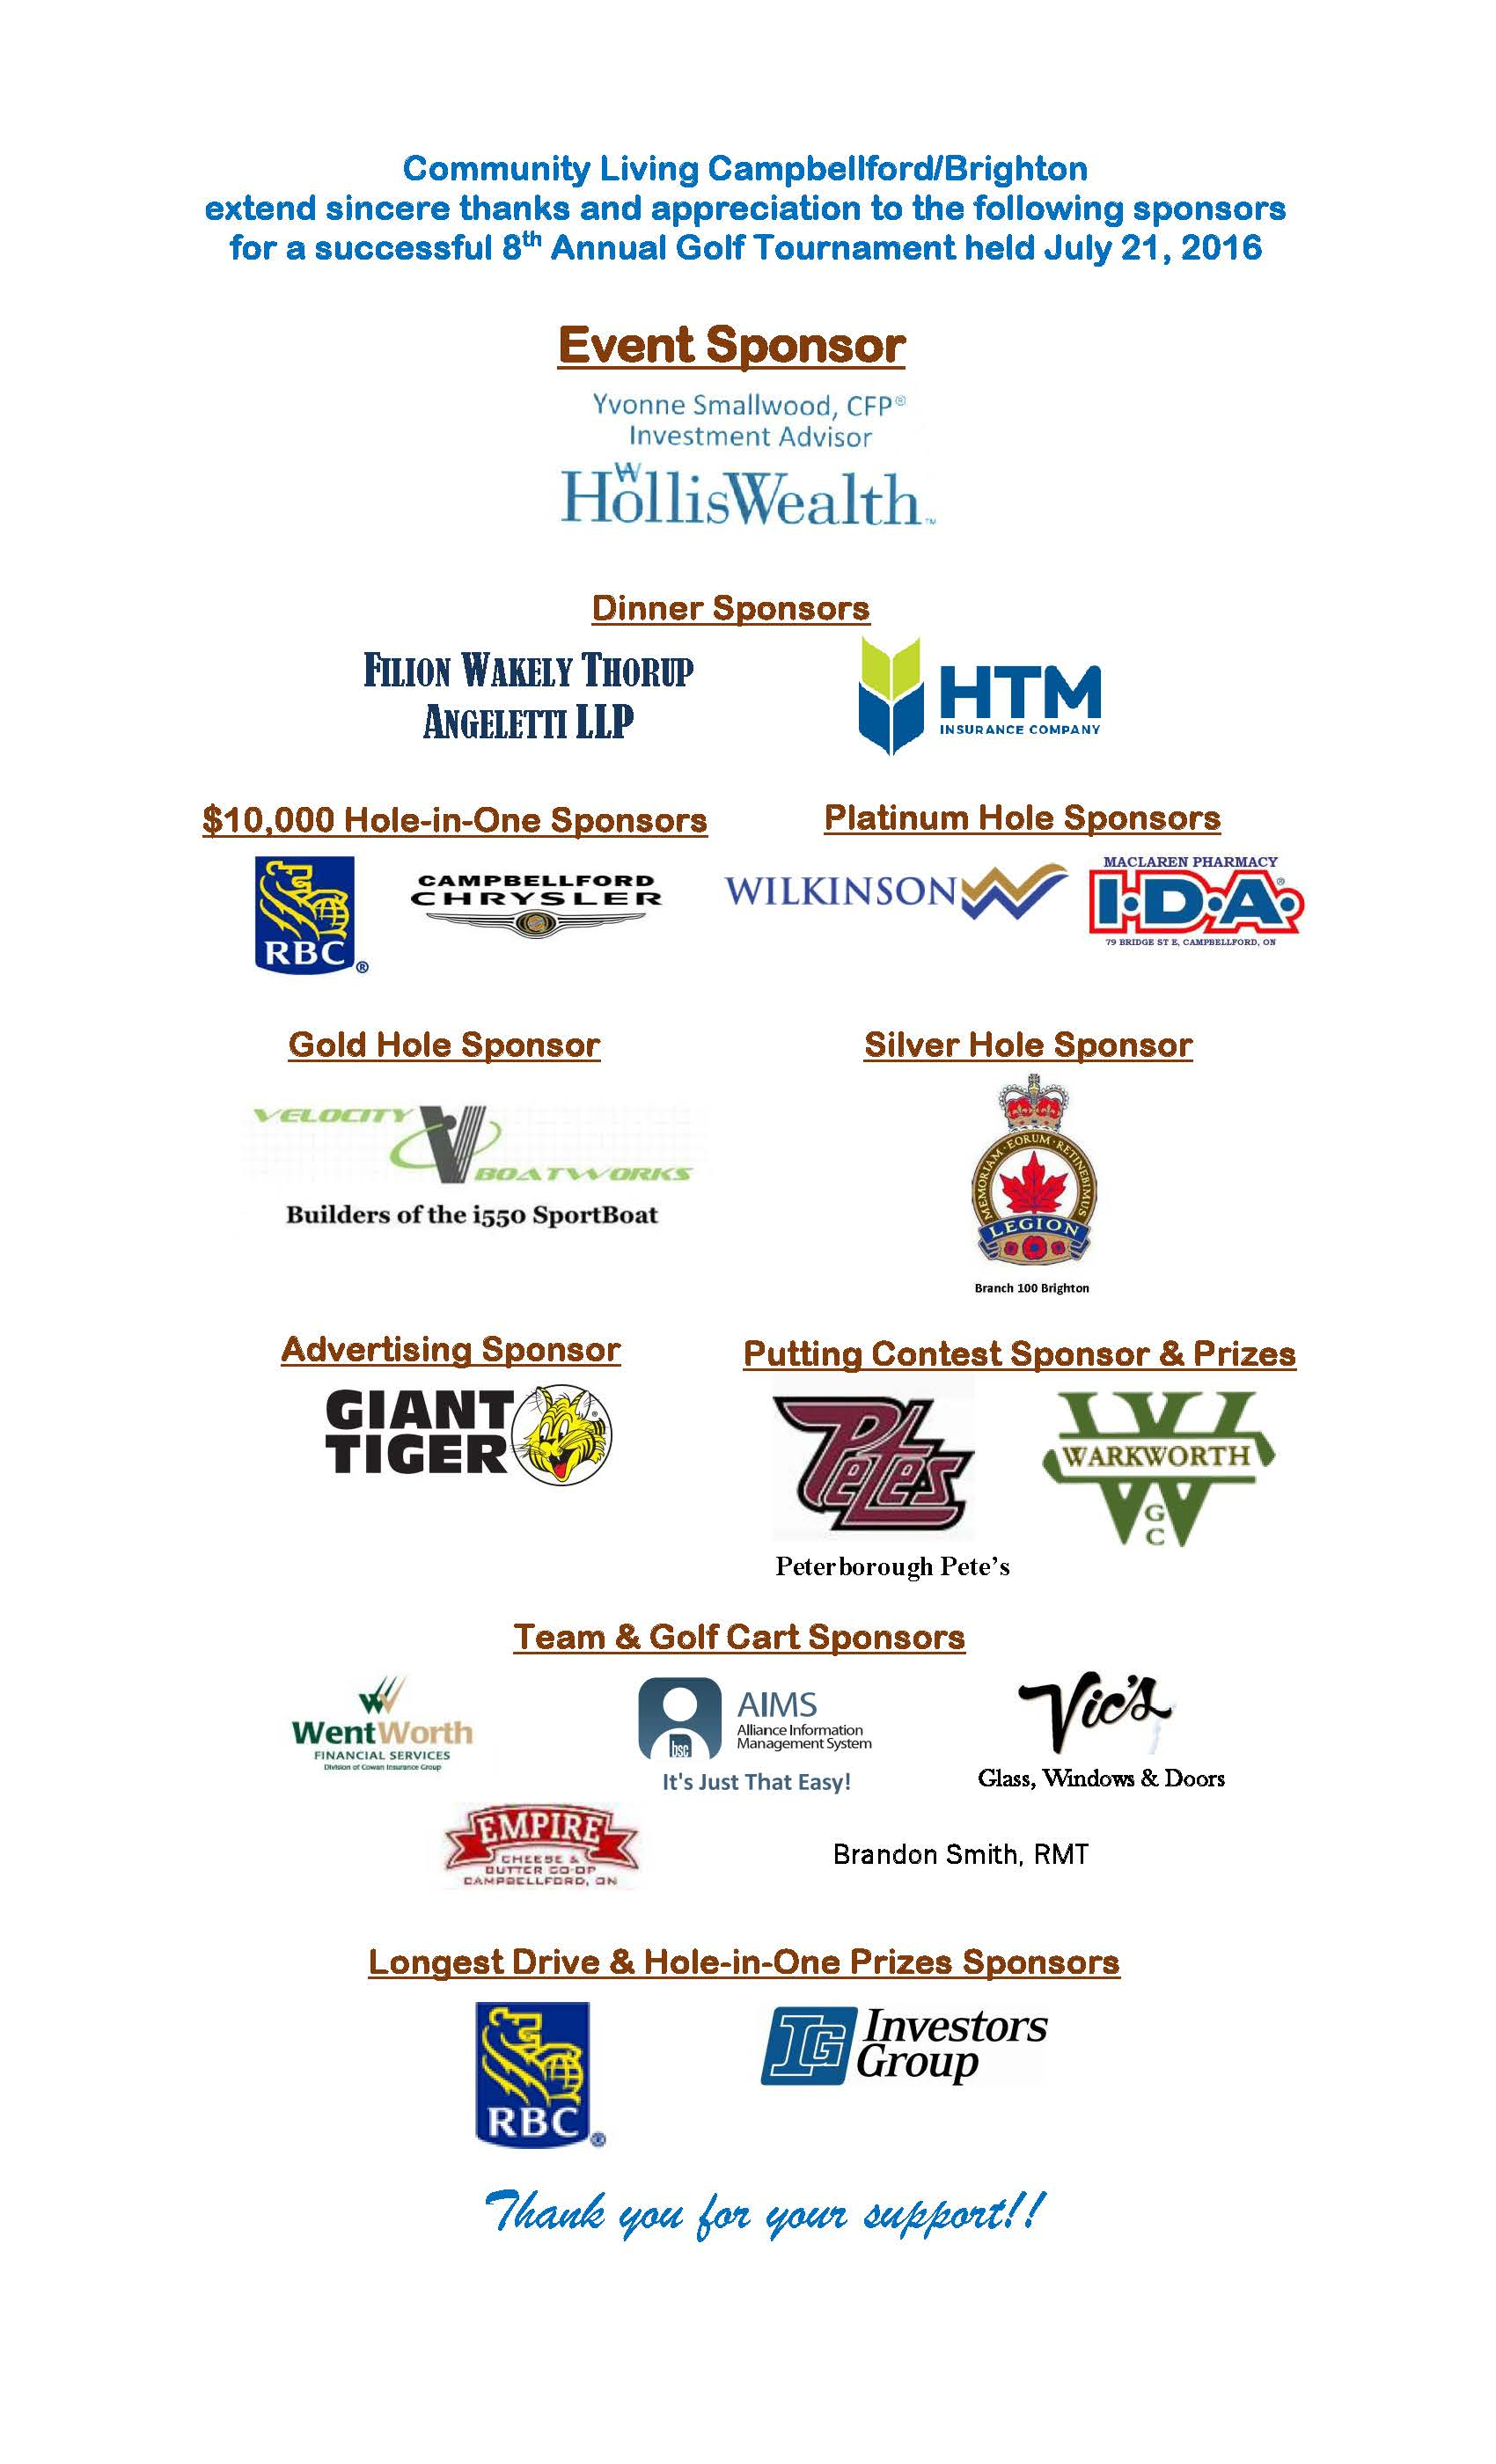 Event Sponsors for our 2016 CLCB Golf Tournament